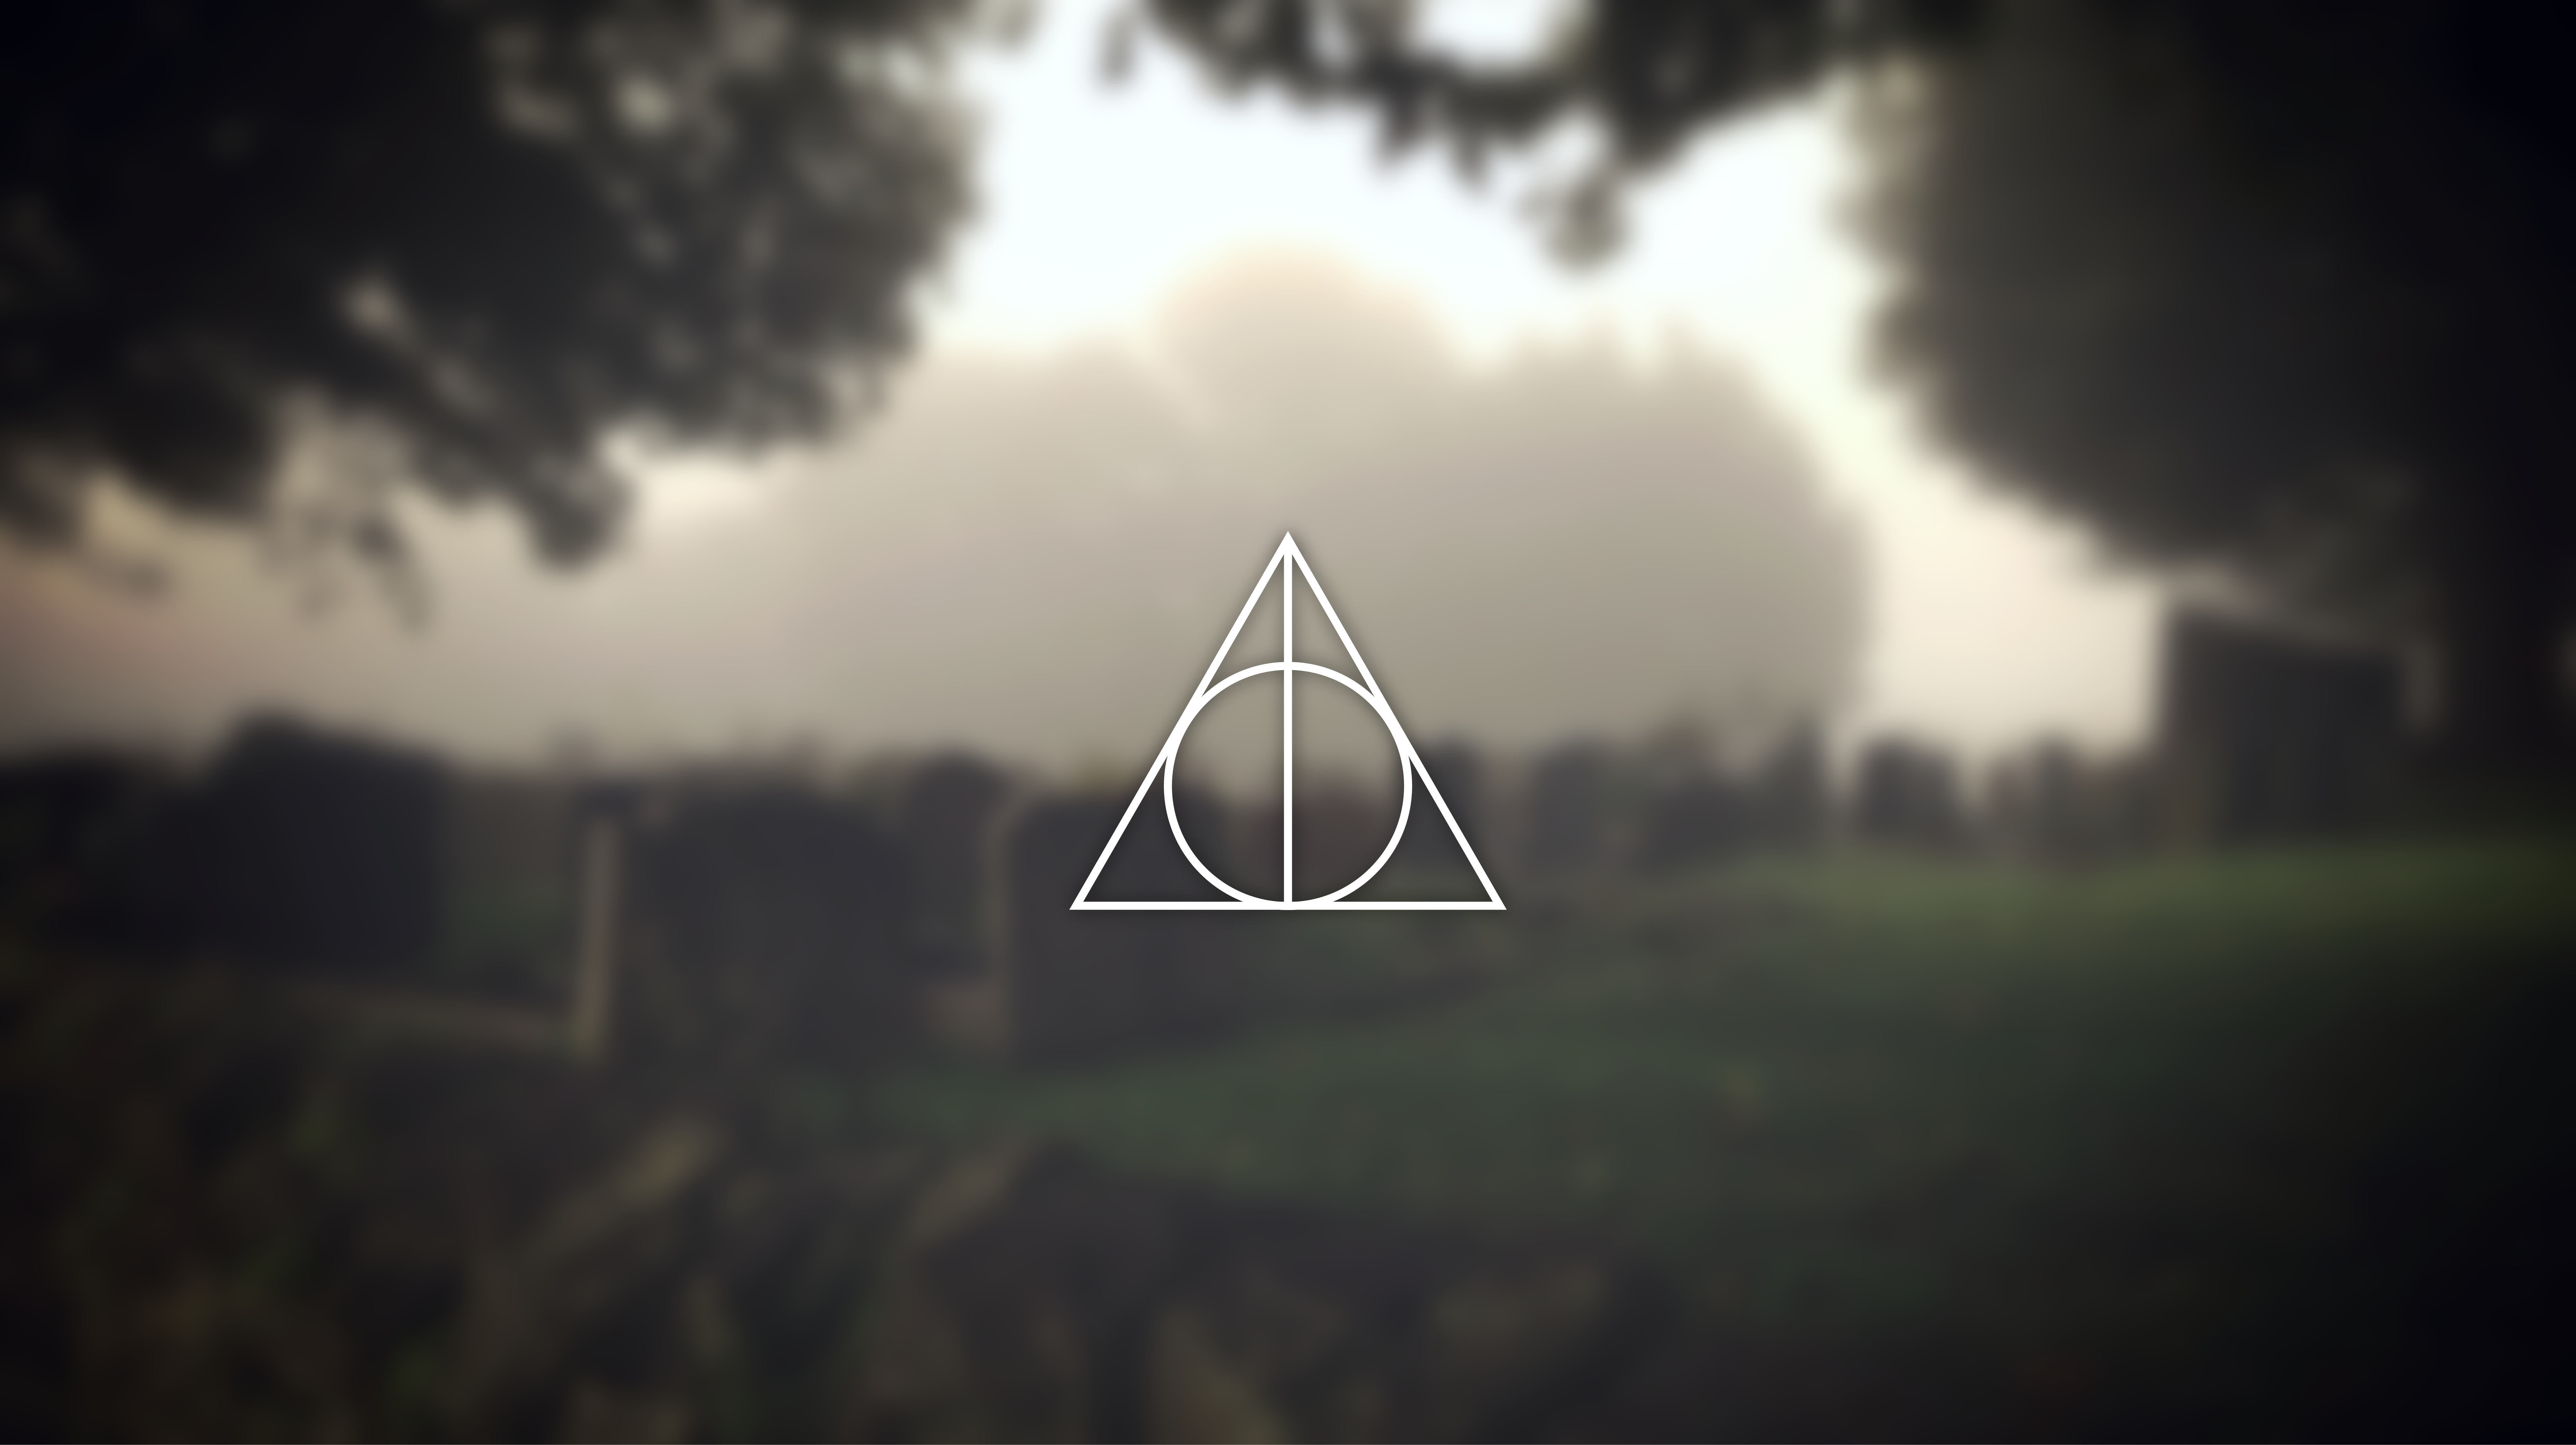 Simple Wallpaper Mac Doctor Who - deathly_hallows_by_knightxmac-d7ahckw  Trends_331129.png